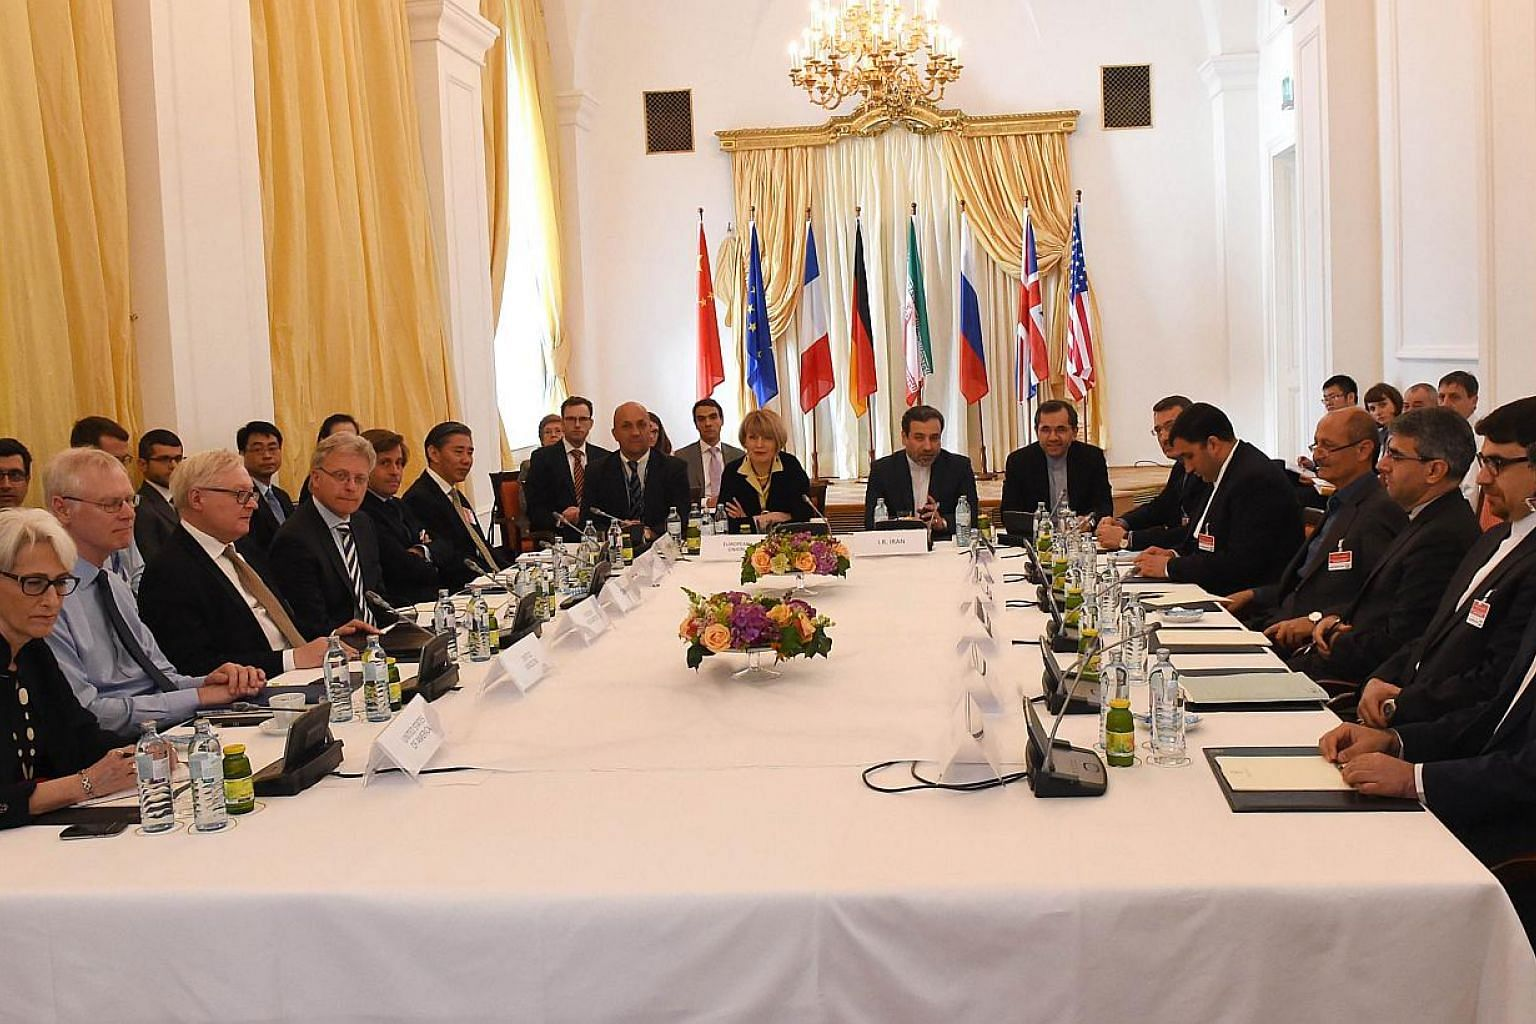 Representatives of the EU, US, Britain, France, Russia, Germany, China and Iran meet for another round of talks in Vienna, Austria on June 12, 2015. -- PHOTO: AFP